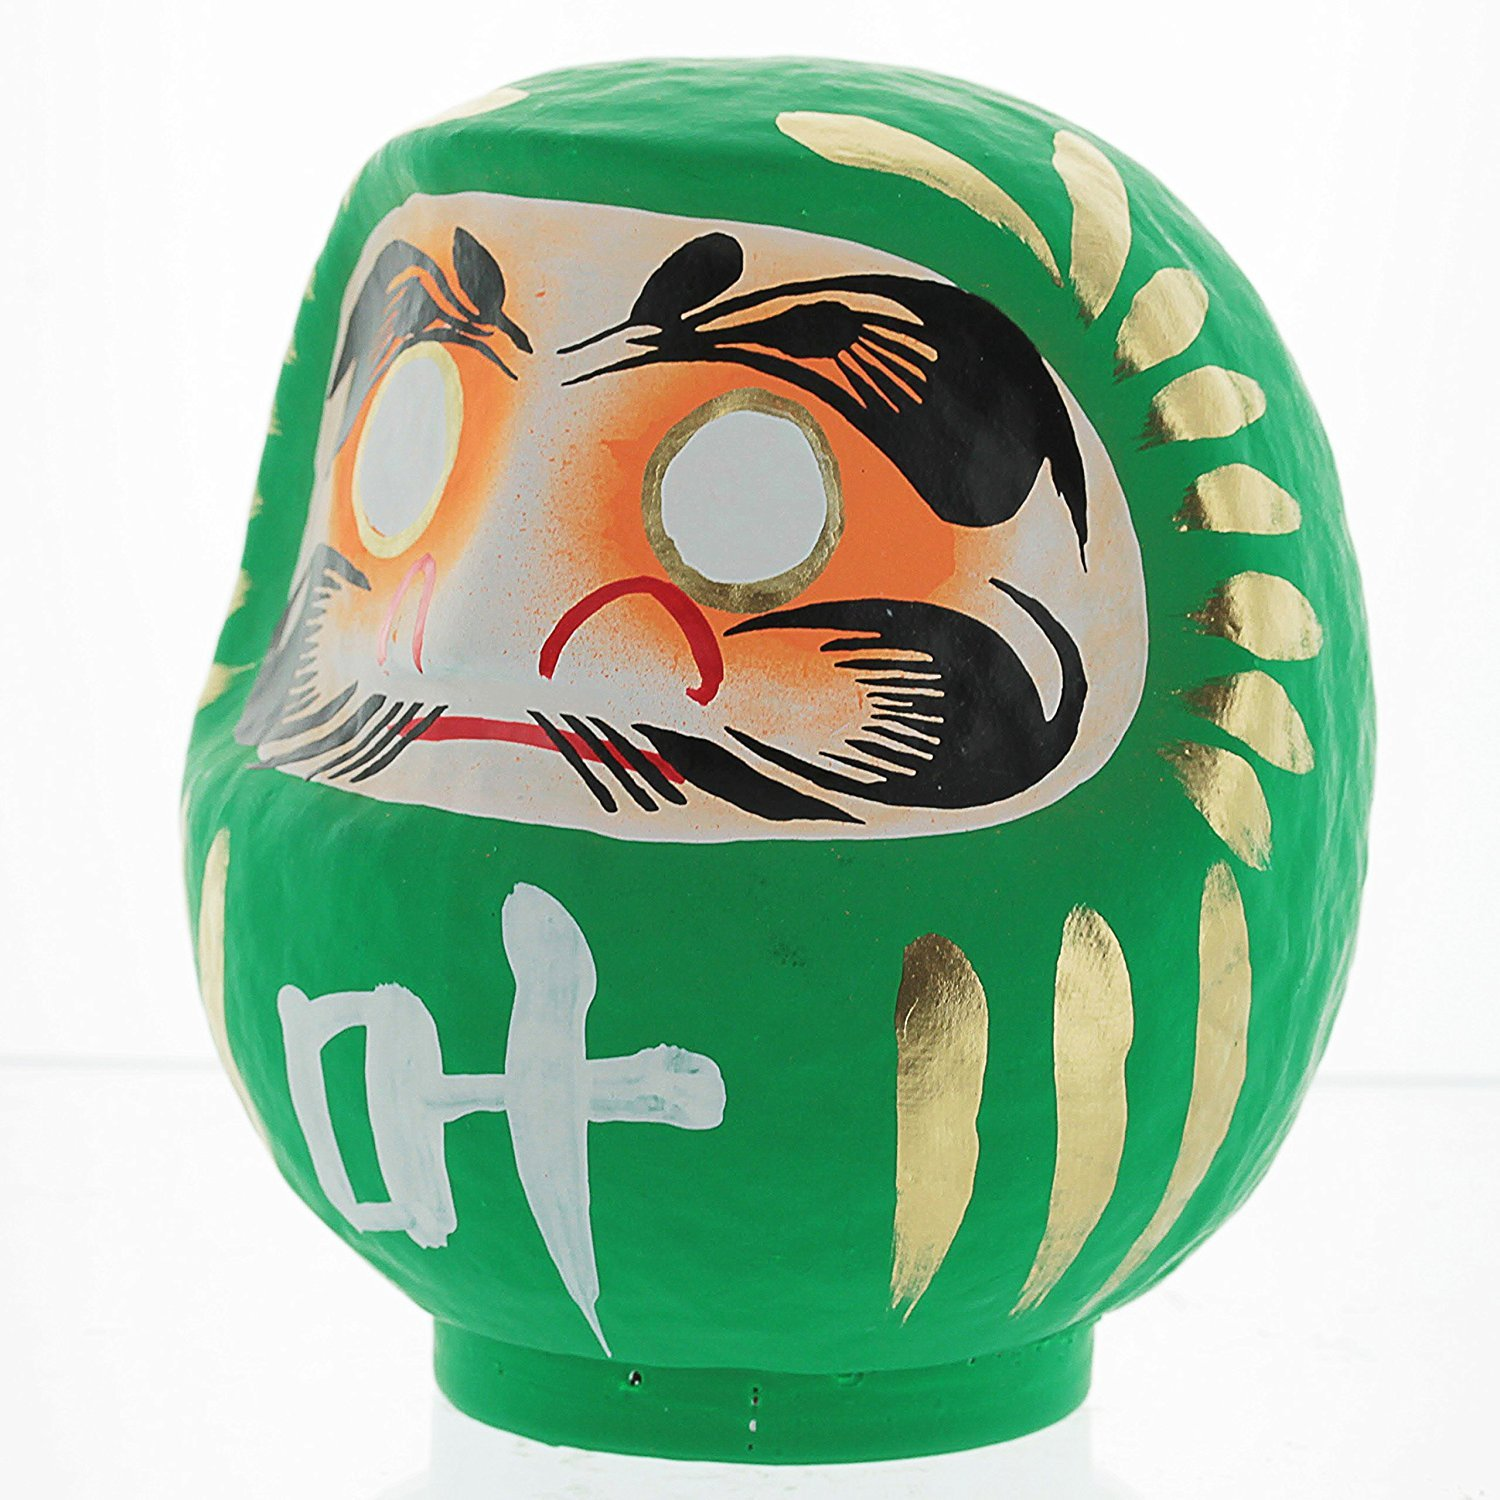 Daruma Doll - Handcrafted in Japan - 4.7